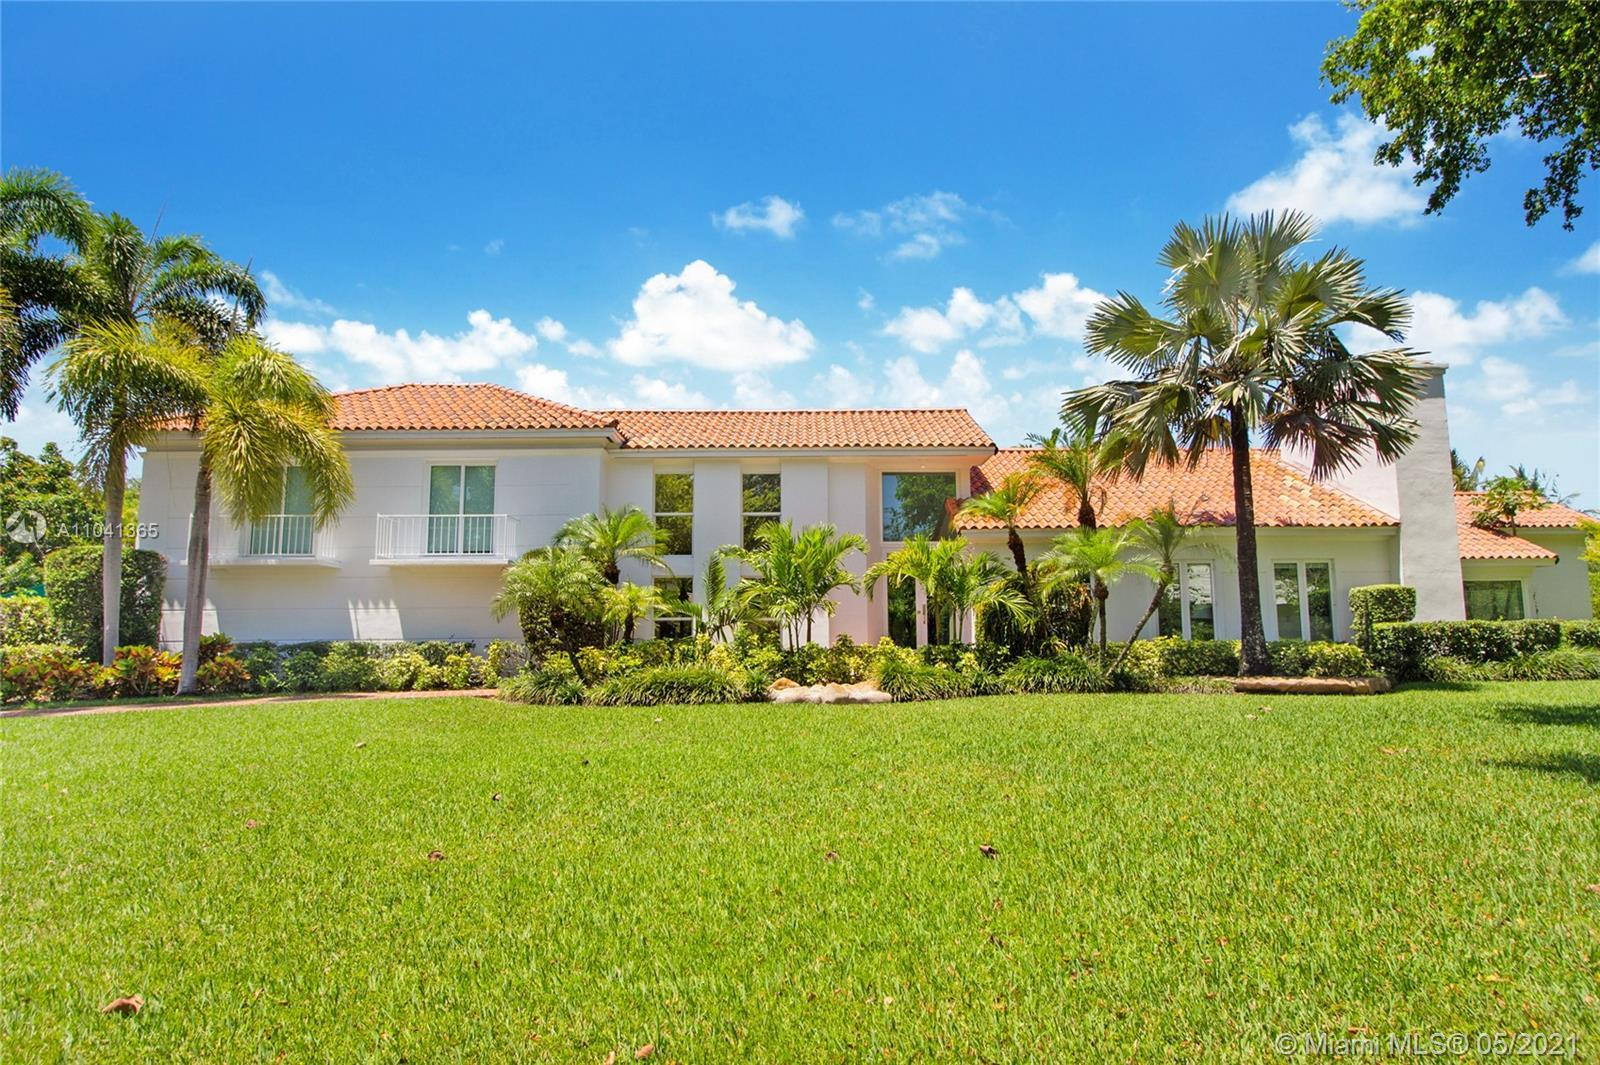 Pine Bay Estates, Coral Gables. Beautiful 2 story home w/great curb appeal on 37,561 SF lot. Modern